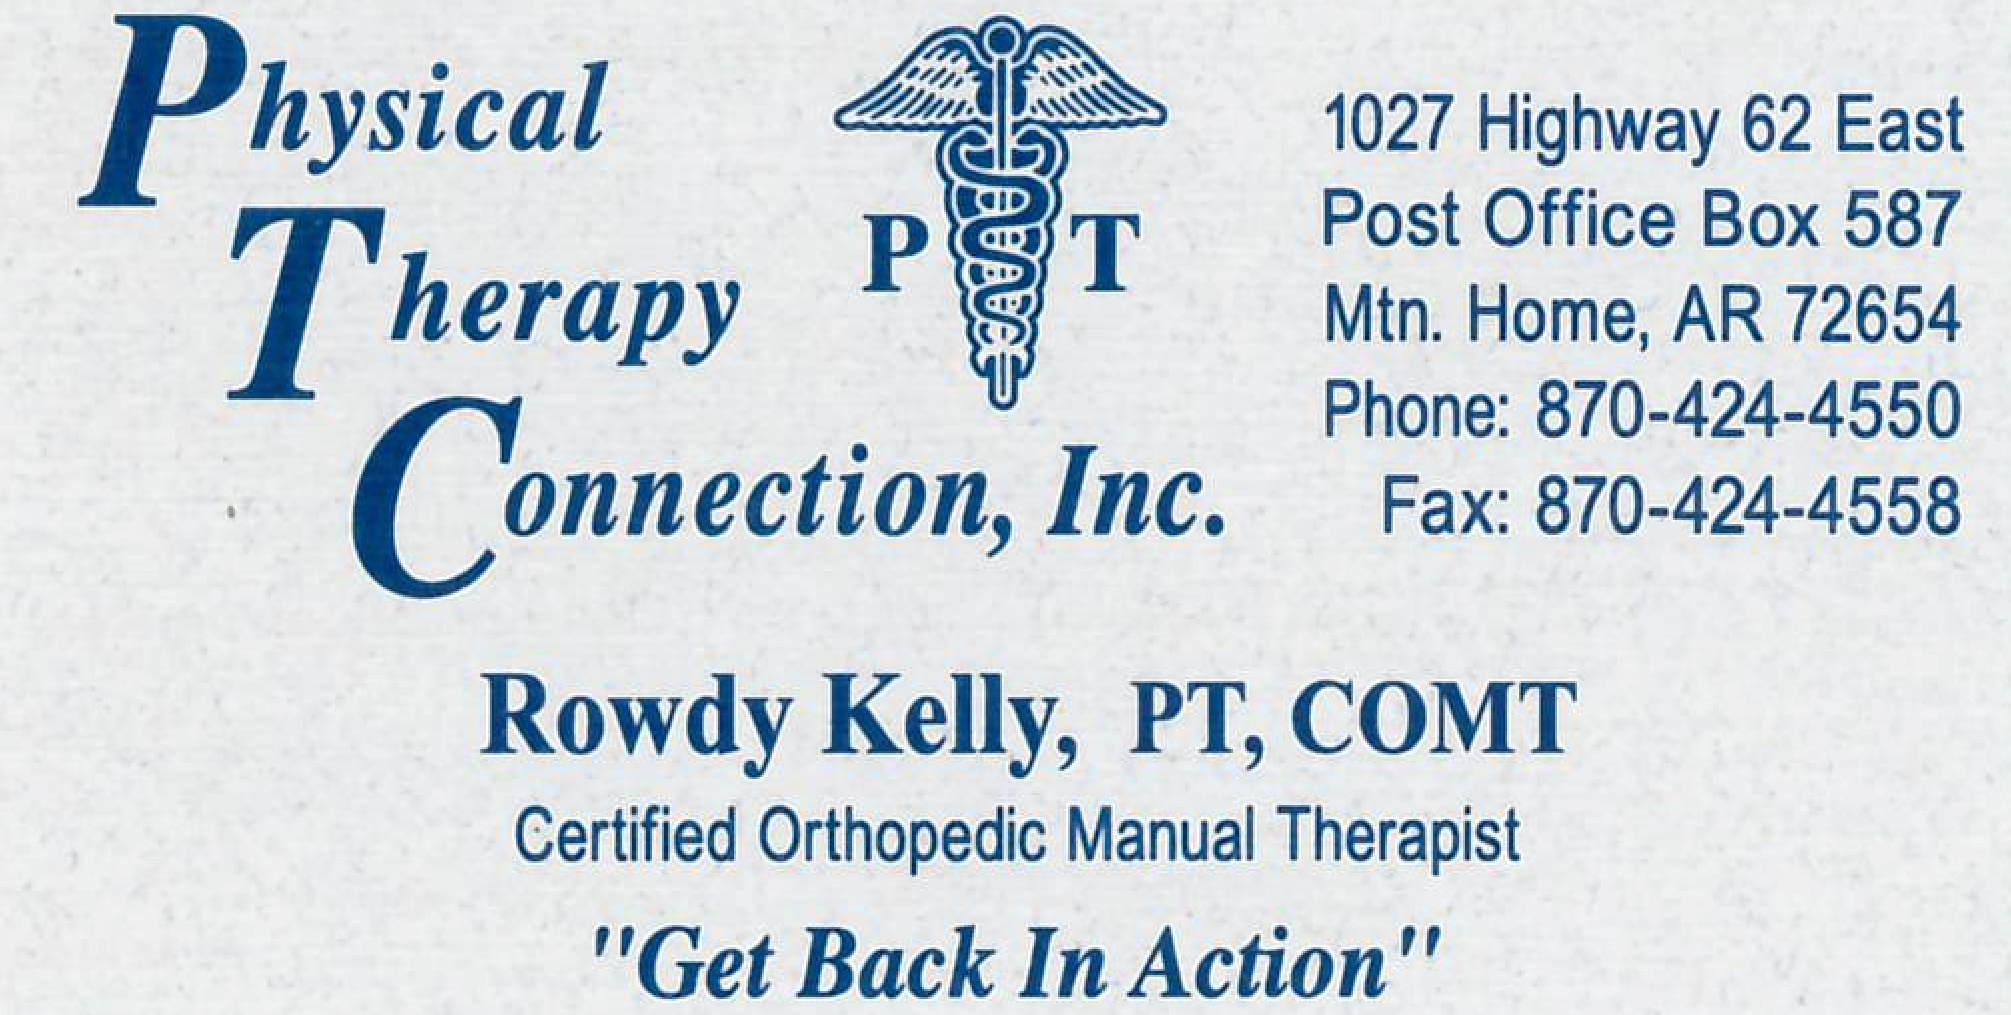 Physical Therapy Connection, Inc.